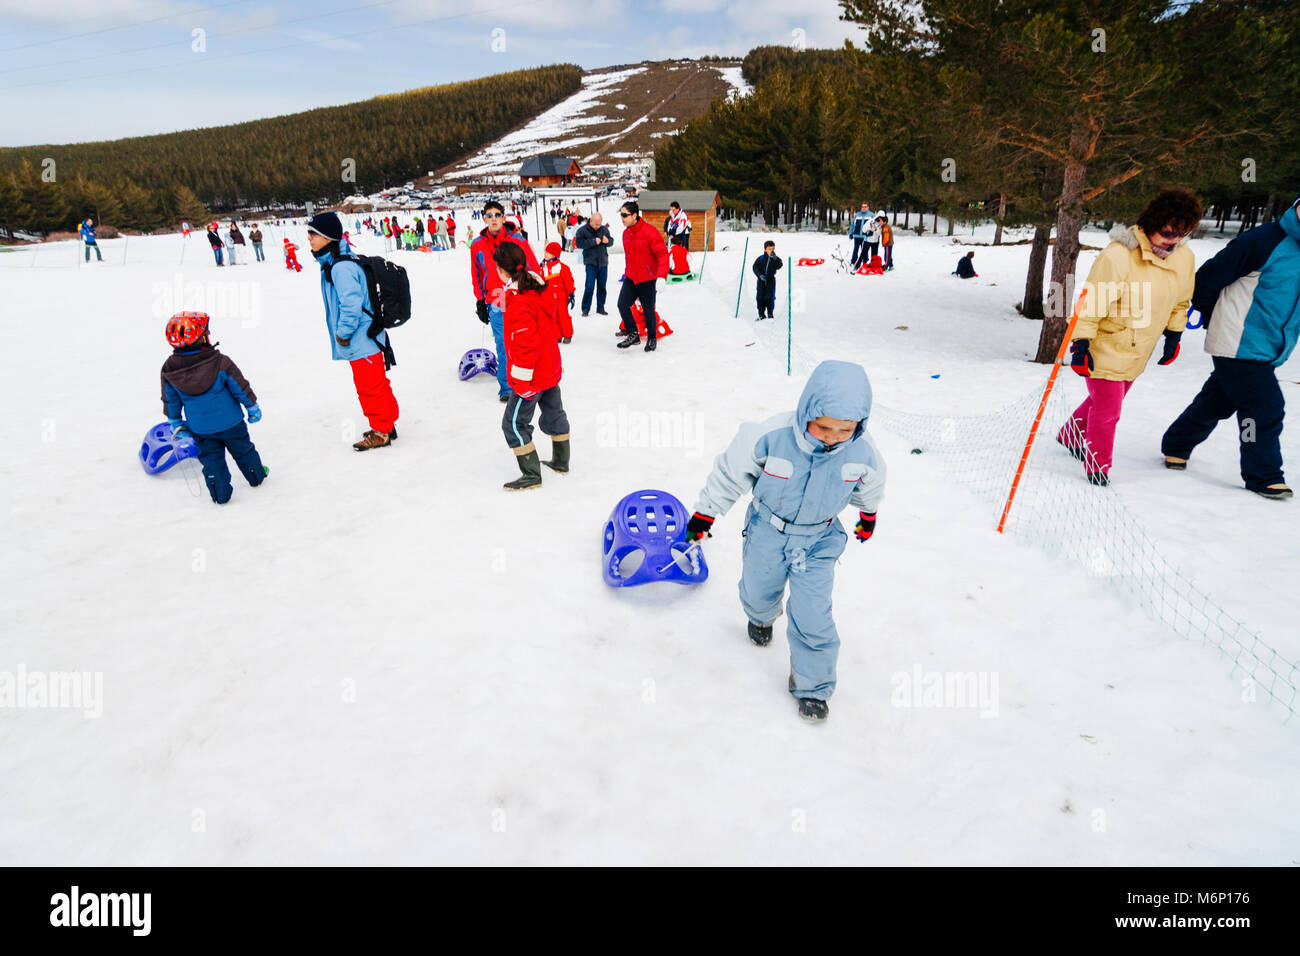 A child in ski suit is pushing a sledge on a snow-covered field at Puerto de la Ragua Ski resort in Sierra Nevada, Stock Photo